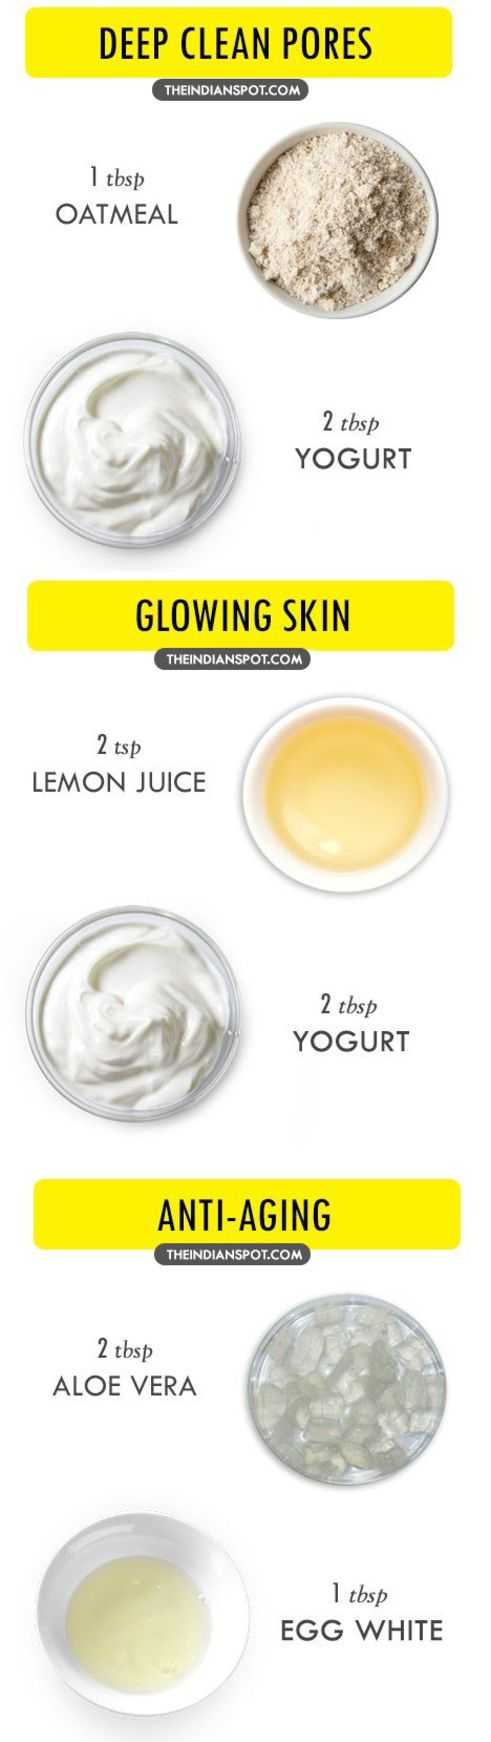 Acne Mask DIY - Homemade Acne Face Mask Recipes - Simple 1 Ingredient Face Masks for Acne *** Click image for more details. #HomemadeAcneMask